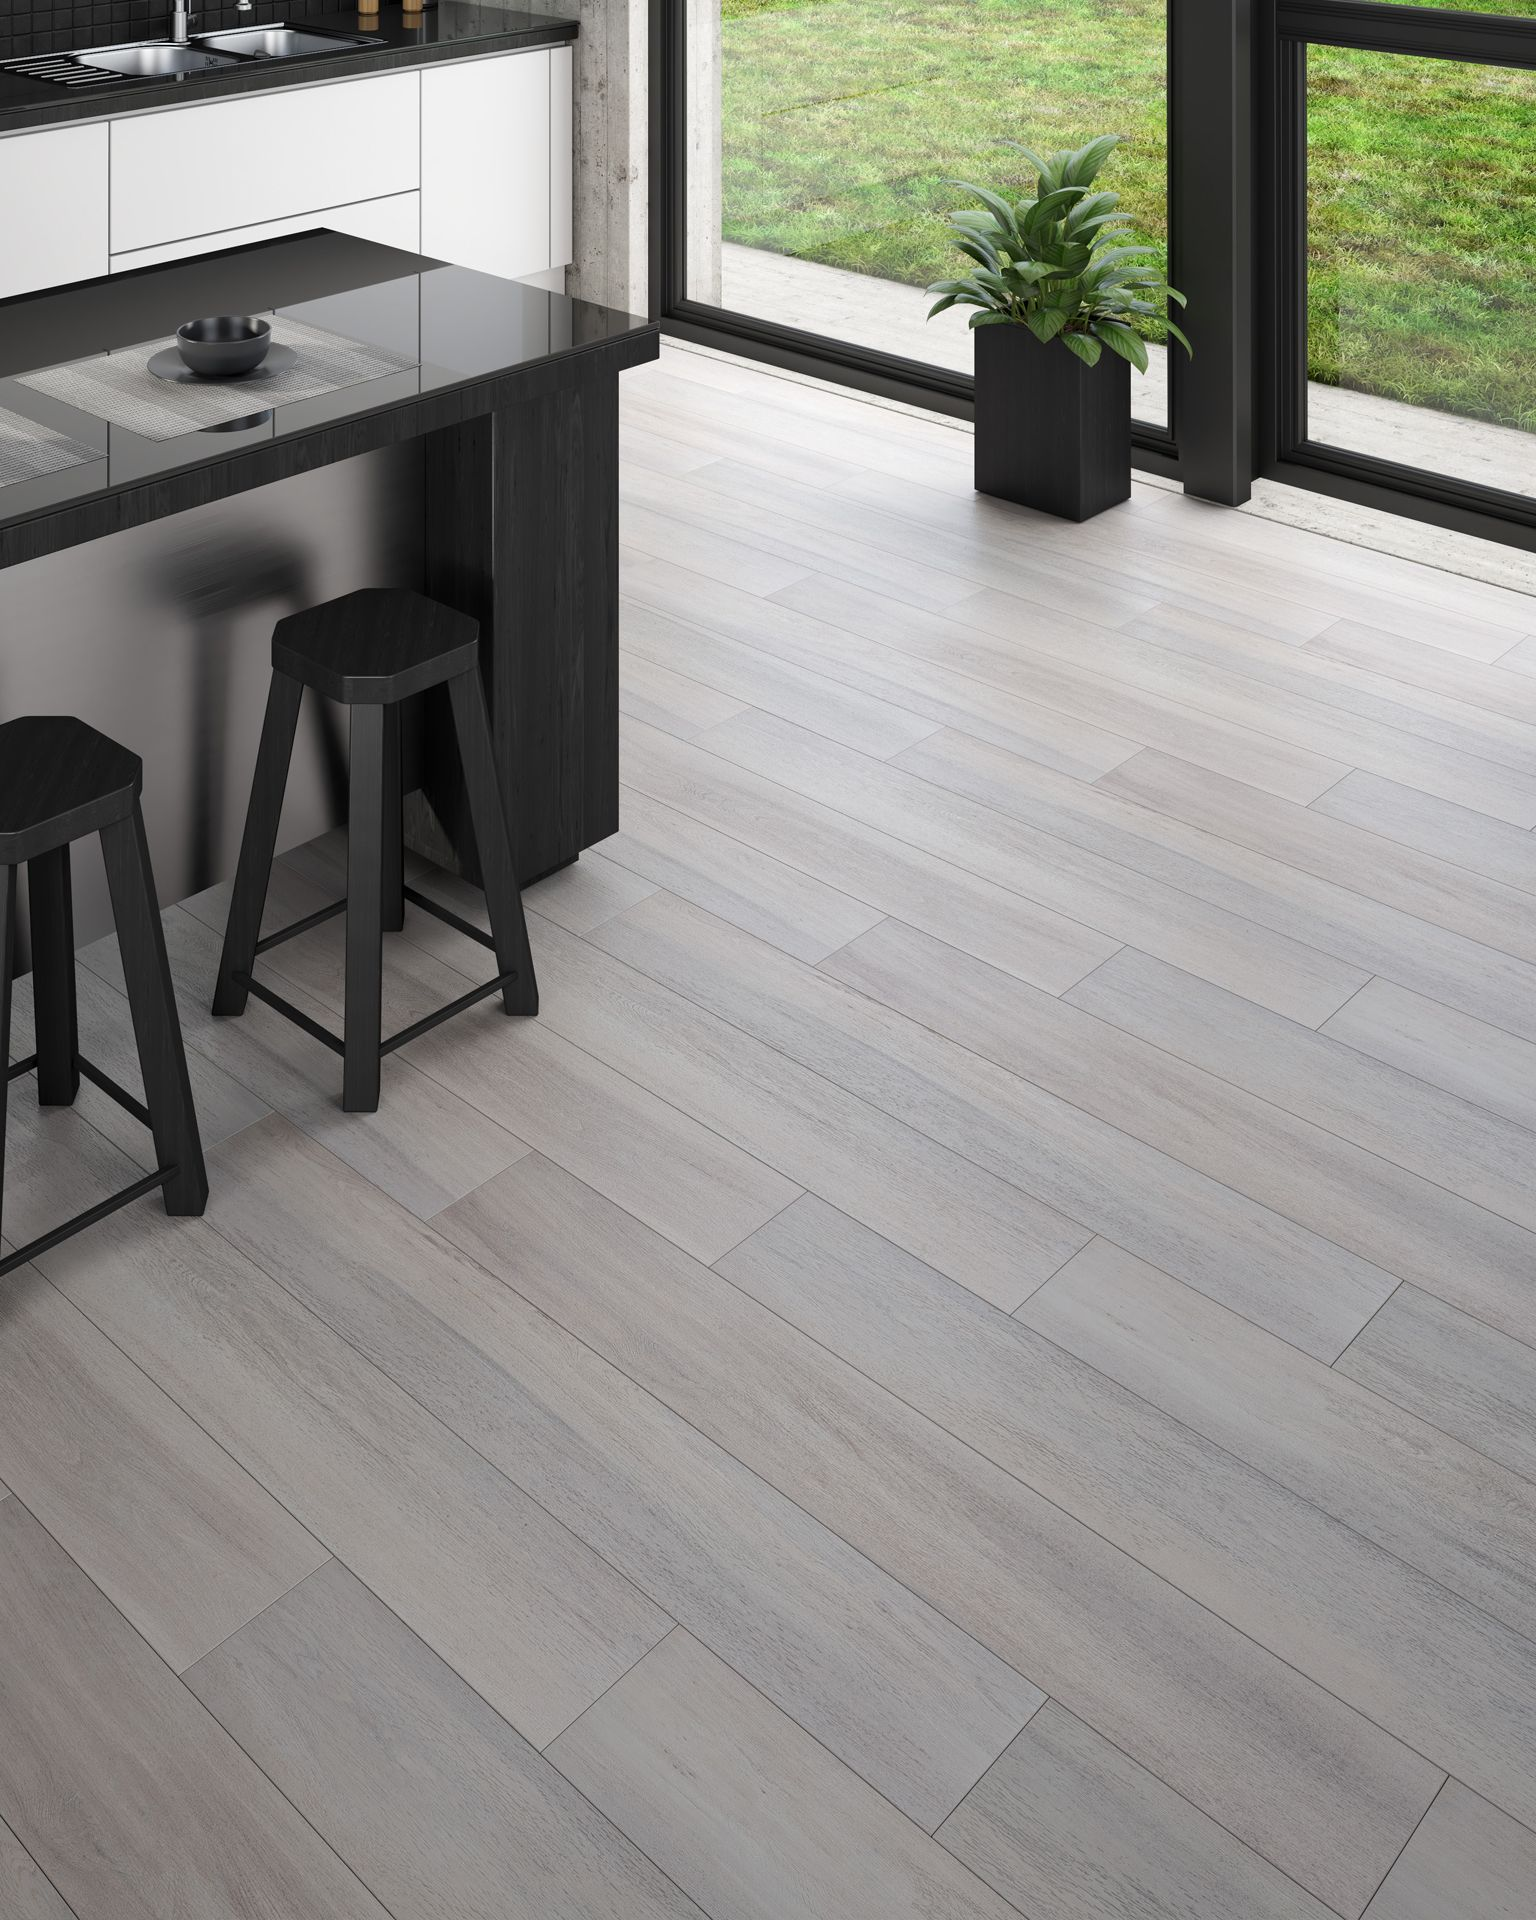 Porcelain Tile Wood Look Guayacan